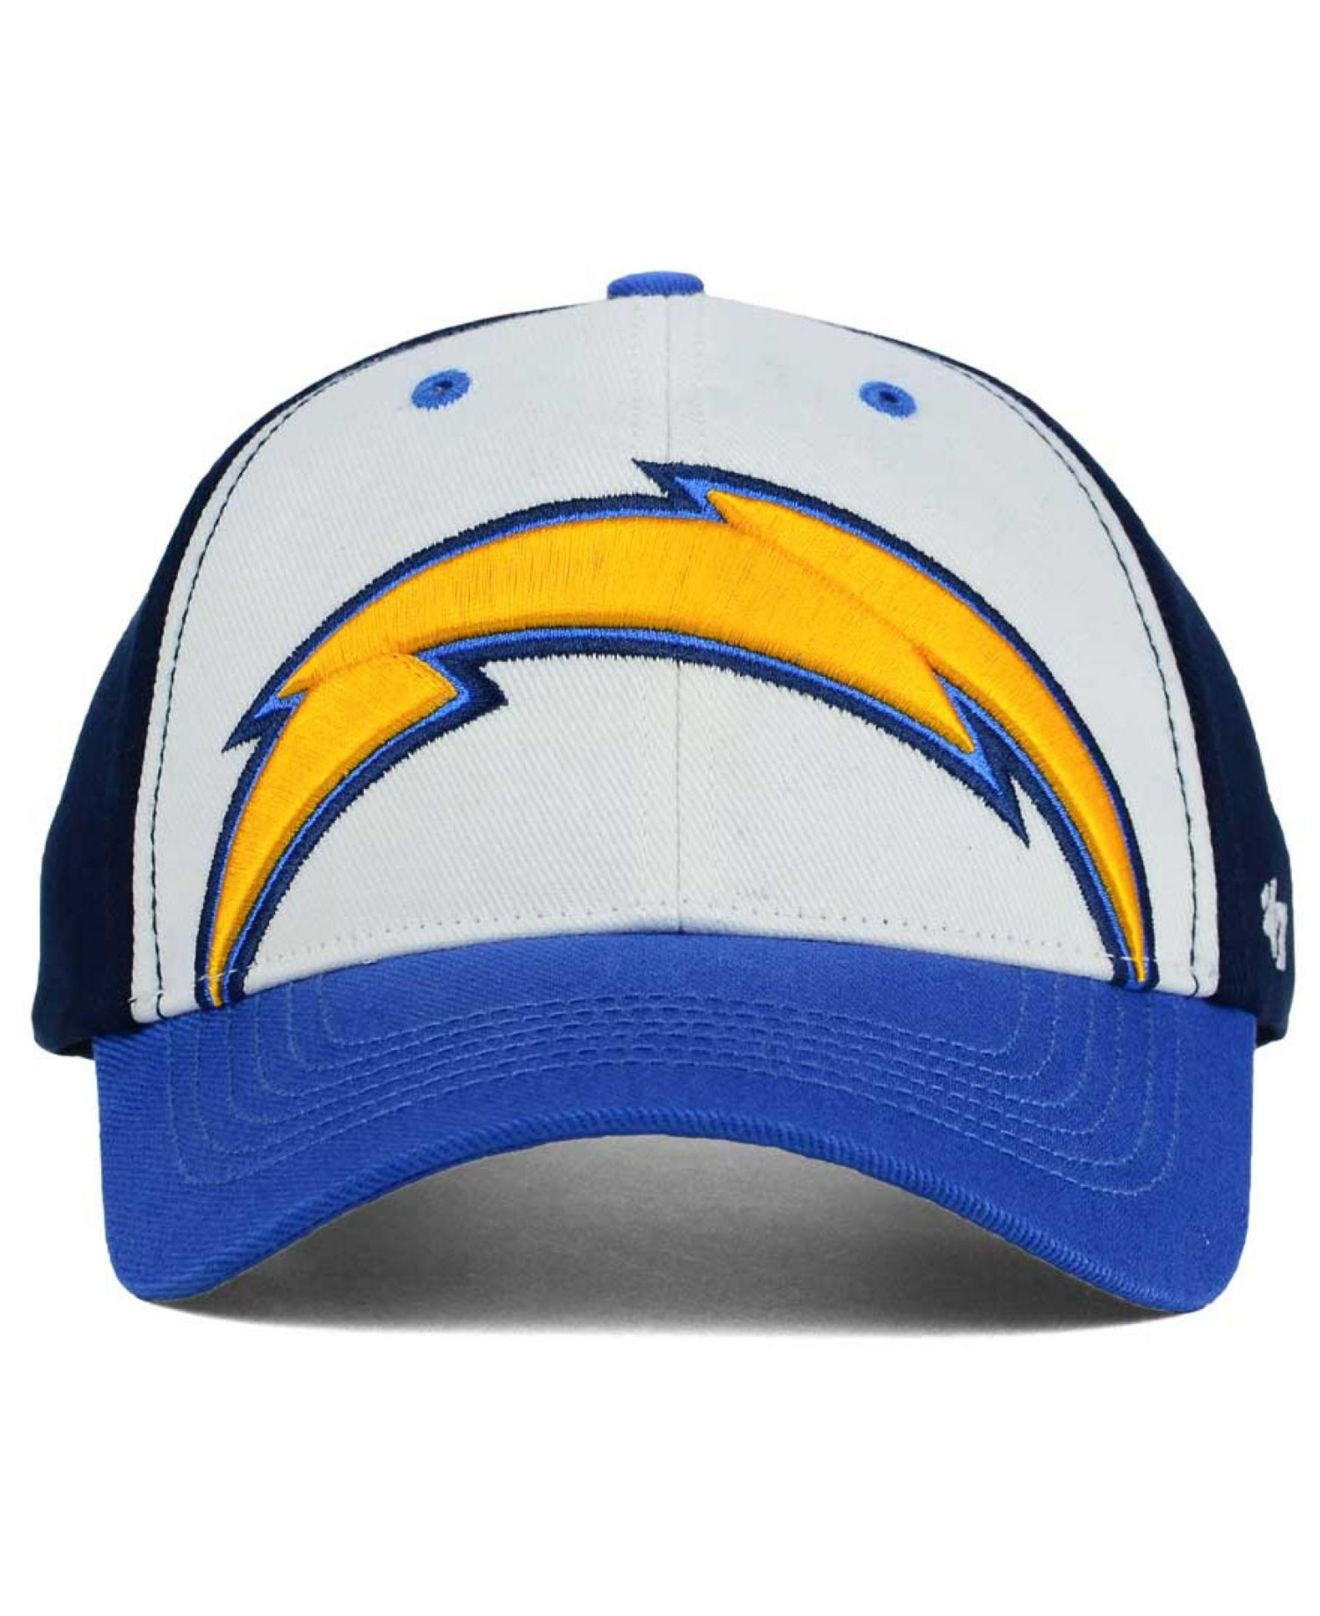 San Diego Chargers Blue: 47 Brand Kids' San Diego Chargers Lil Show Mvp Cap